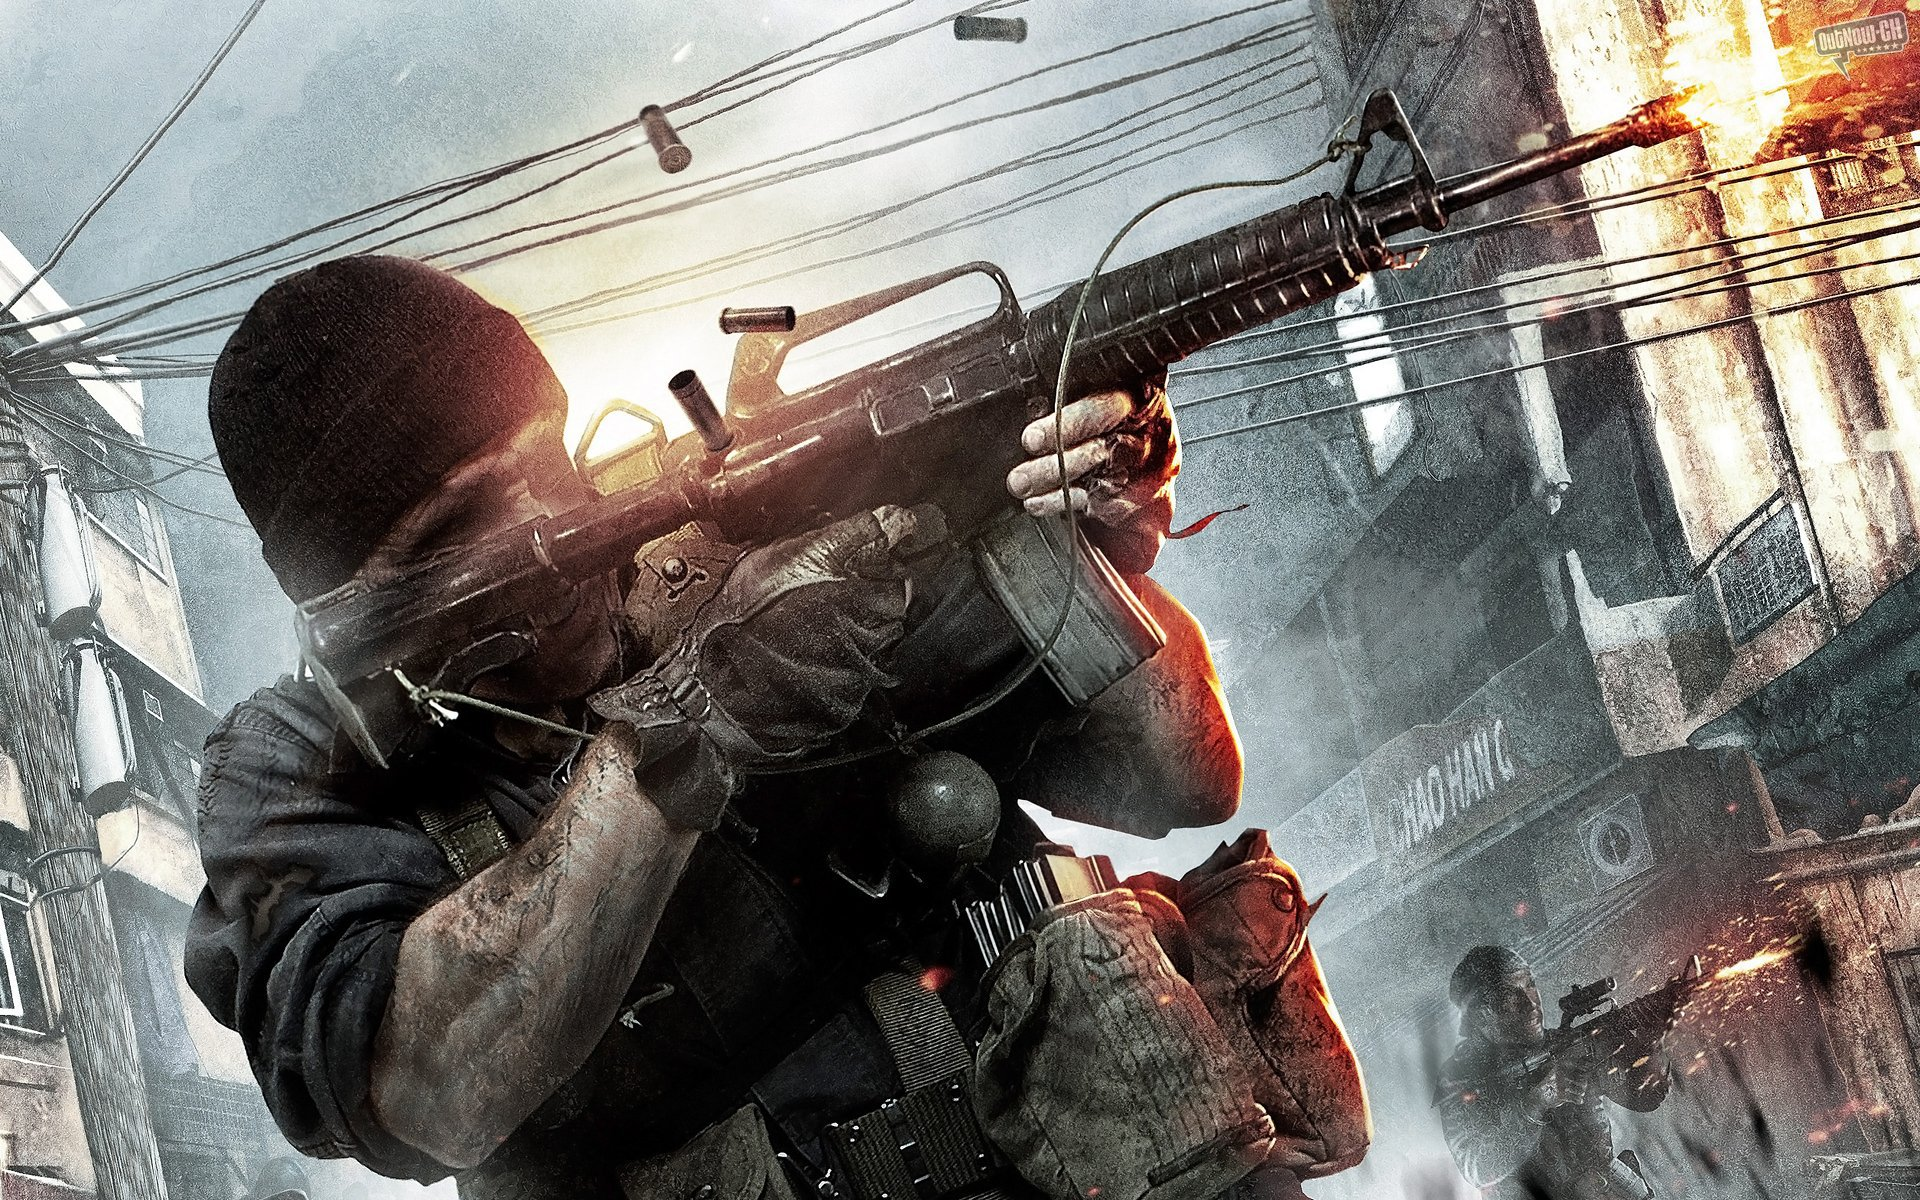 of Duty Black OPS wallpapers Call of Duty Black OPS stock photos 1920x1200